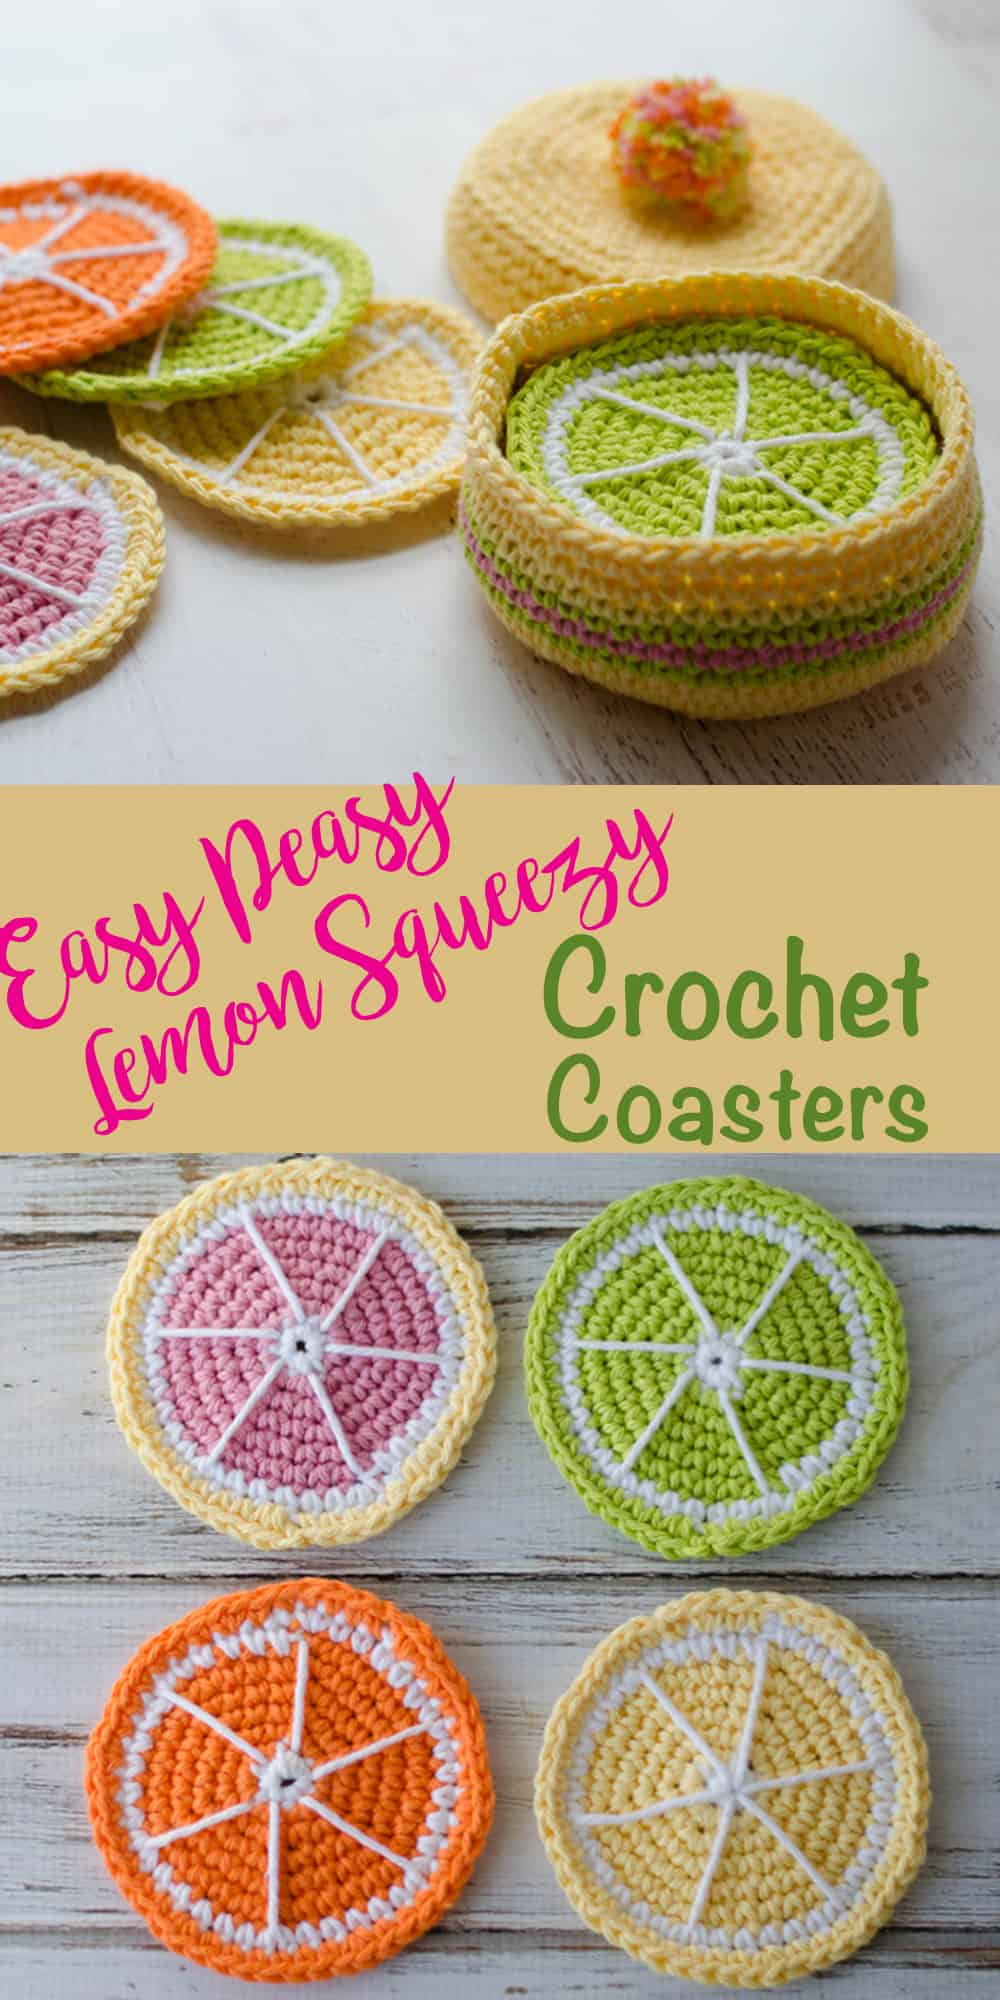 Free crochet coasters pattern for lemon coasters. Love these! So cute! Easy and free crochet pattern!